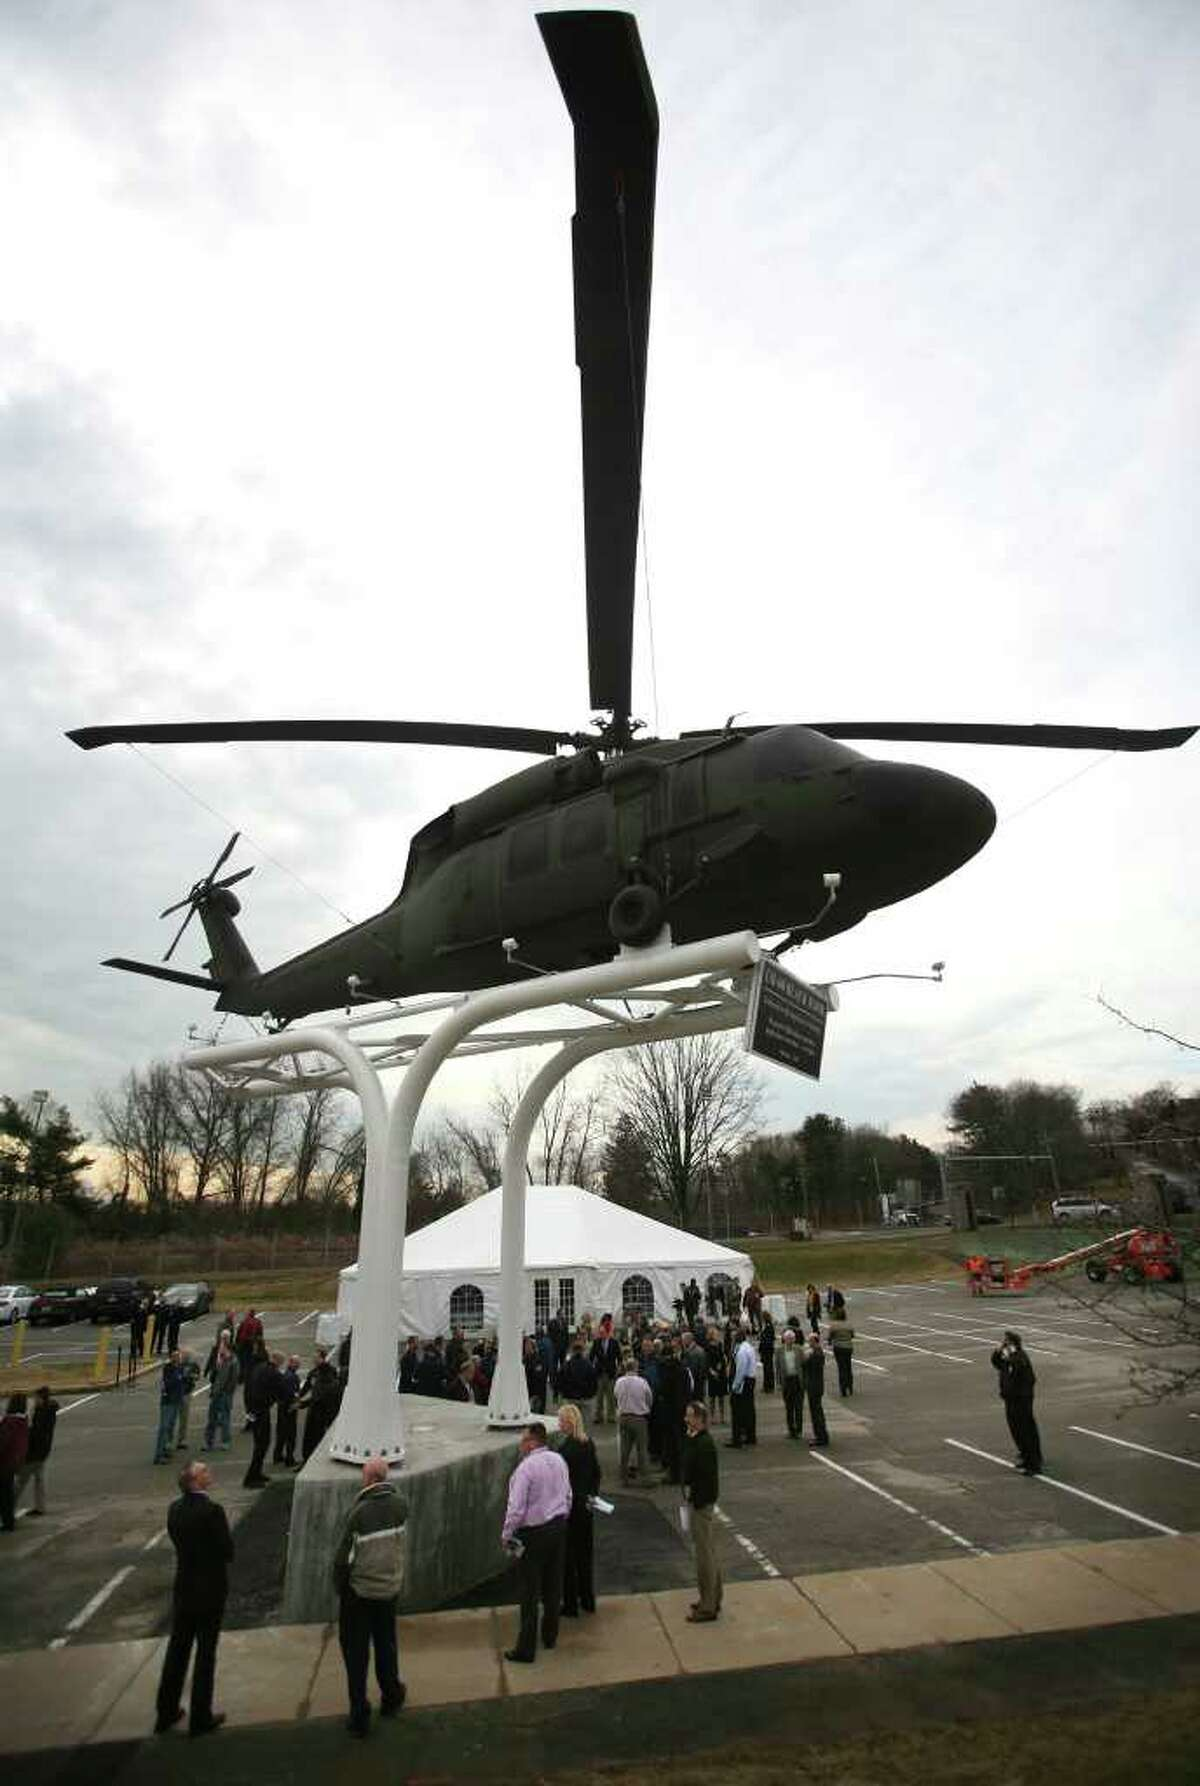 Sikorsky employees gather around the UH-60 Black Hawk helicopter unveiled in front of the company headquarters and factory on Main Street in Stratford on Wednesday, February 1, 2012.